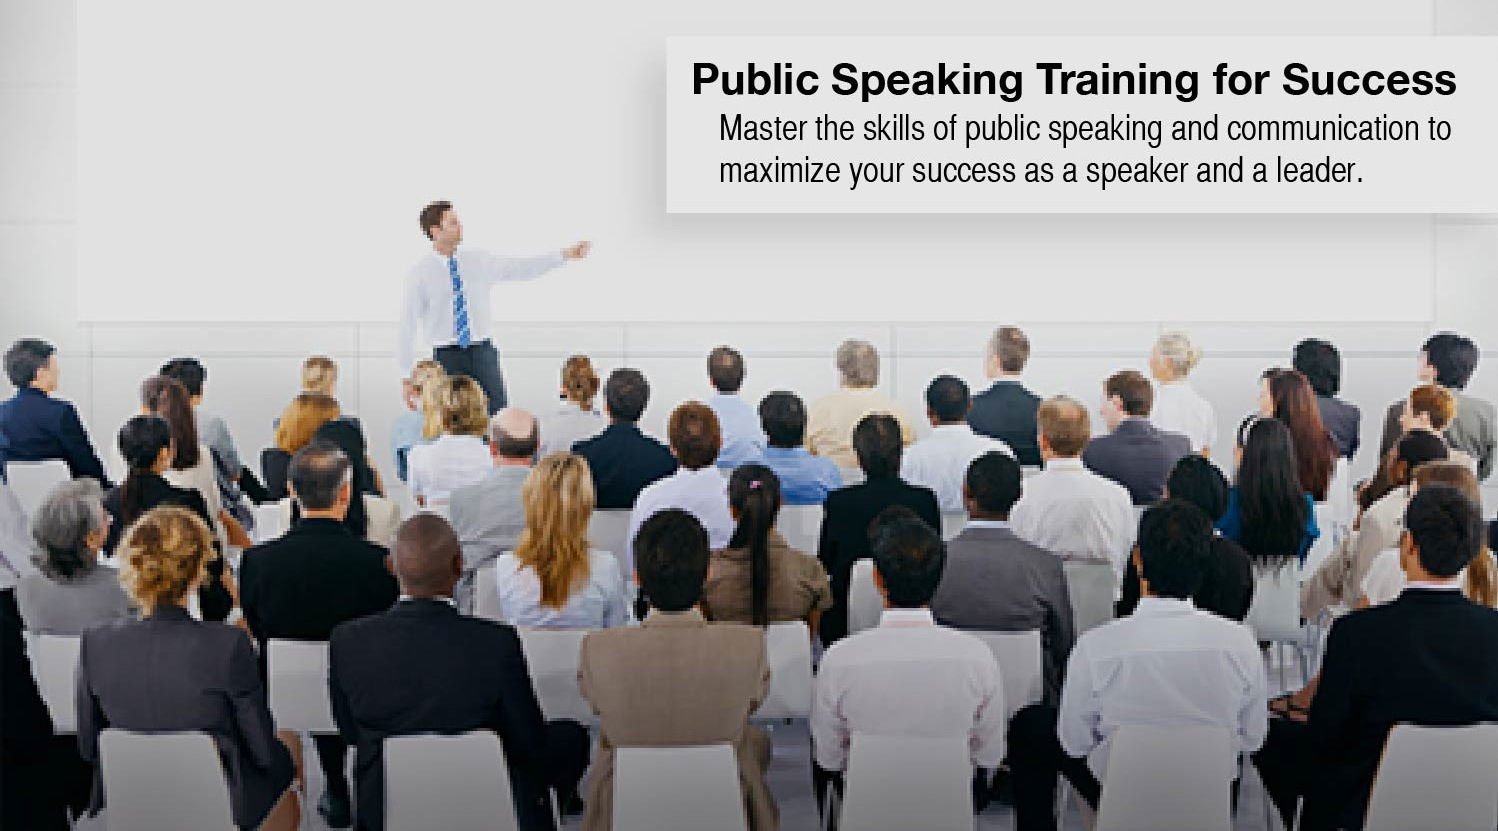 Public Speaking Training for Success - Master the skills of public speaking and communication to maximize your success as a speaker and a leader.